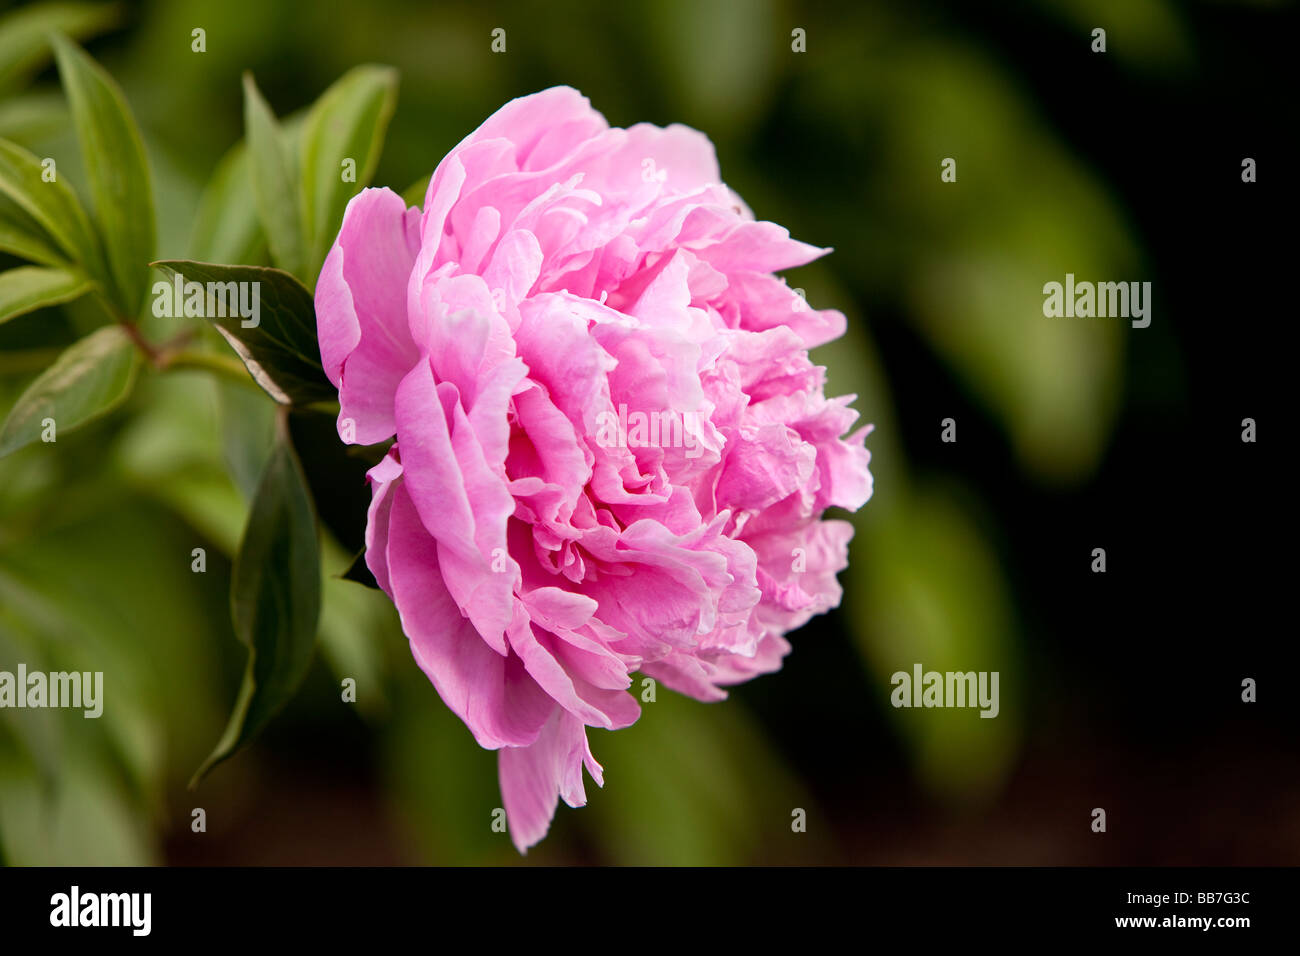 A pink peony - a flowering plant in the genus Paeonia - the only genus in the family Paeoniaceae. Stock Photo